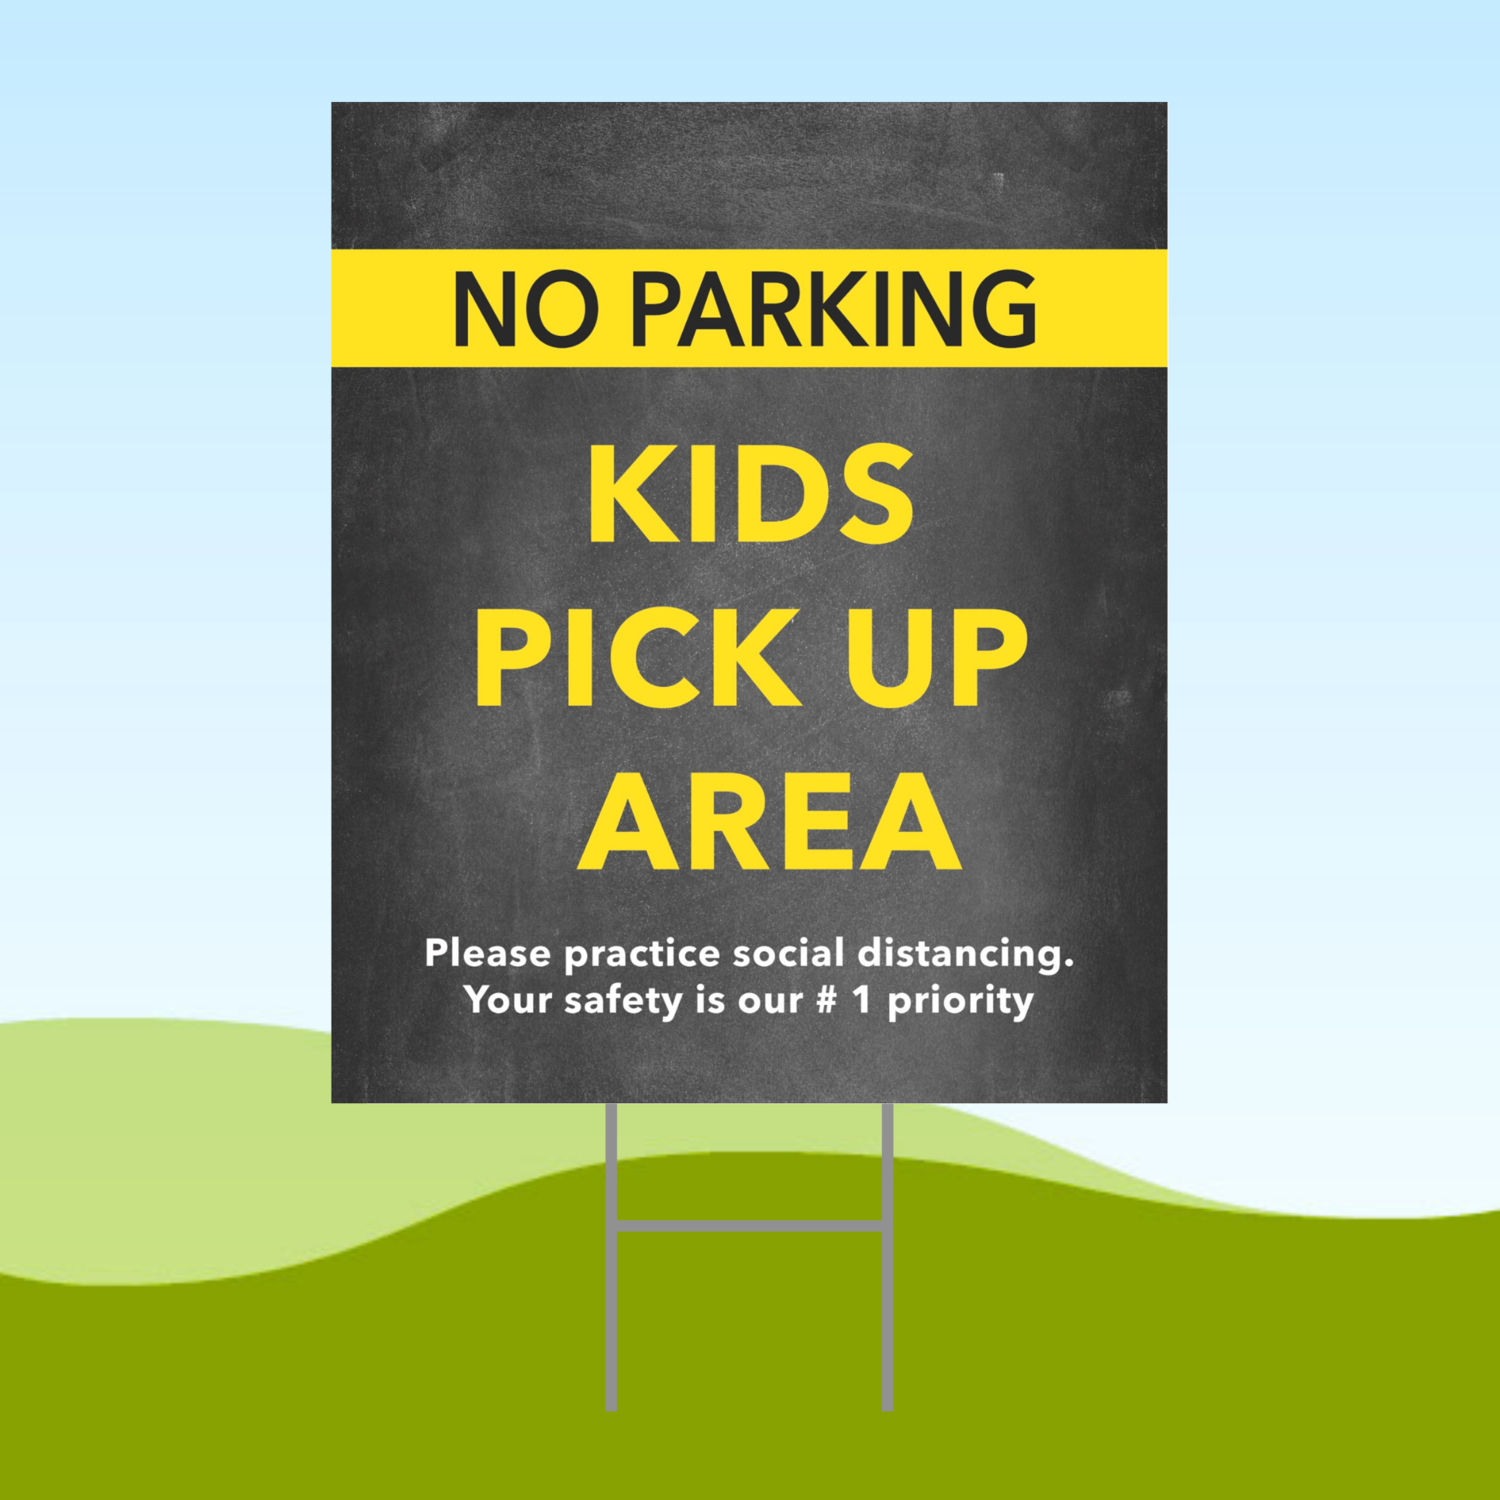 No Parking Kids Pick Up Area 18x24 Yard Sign WITH STAKE Corrugated Plastic Bandit